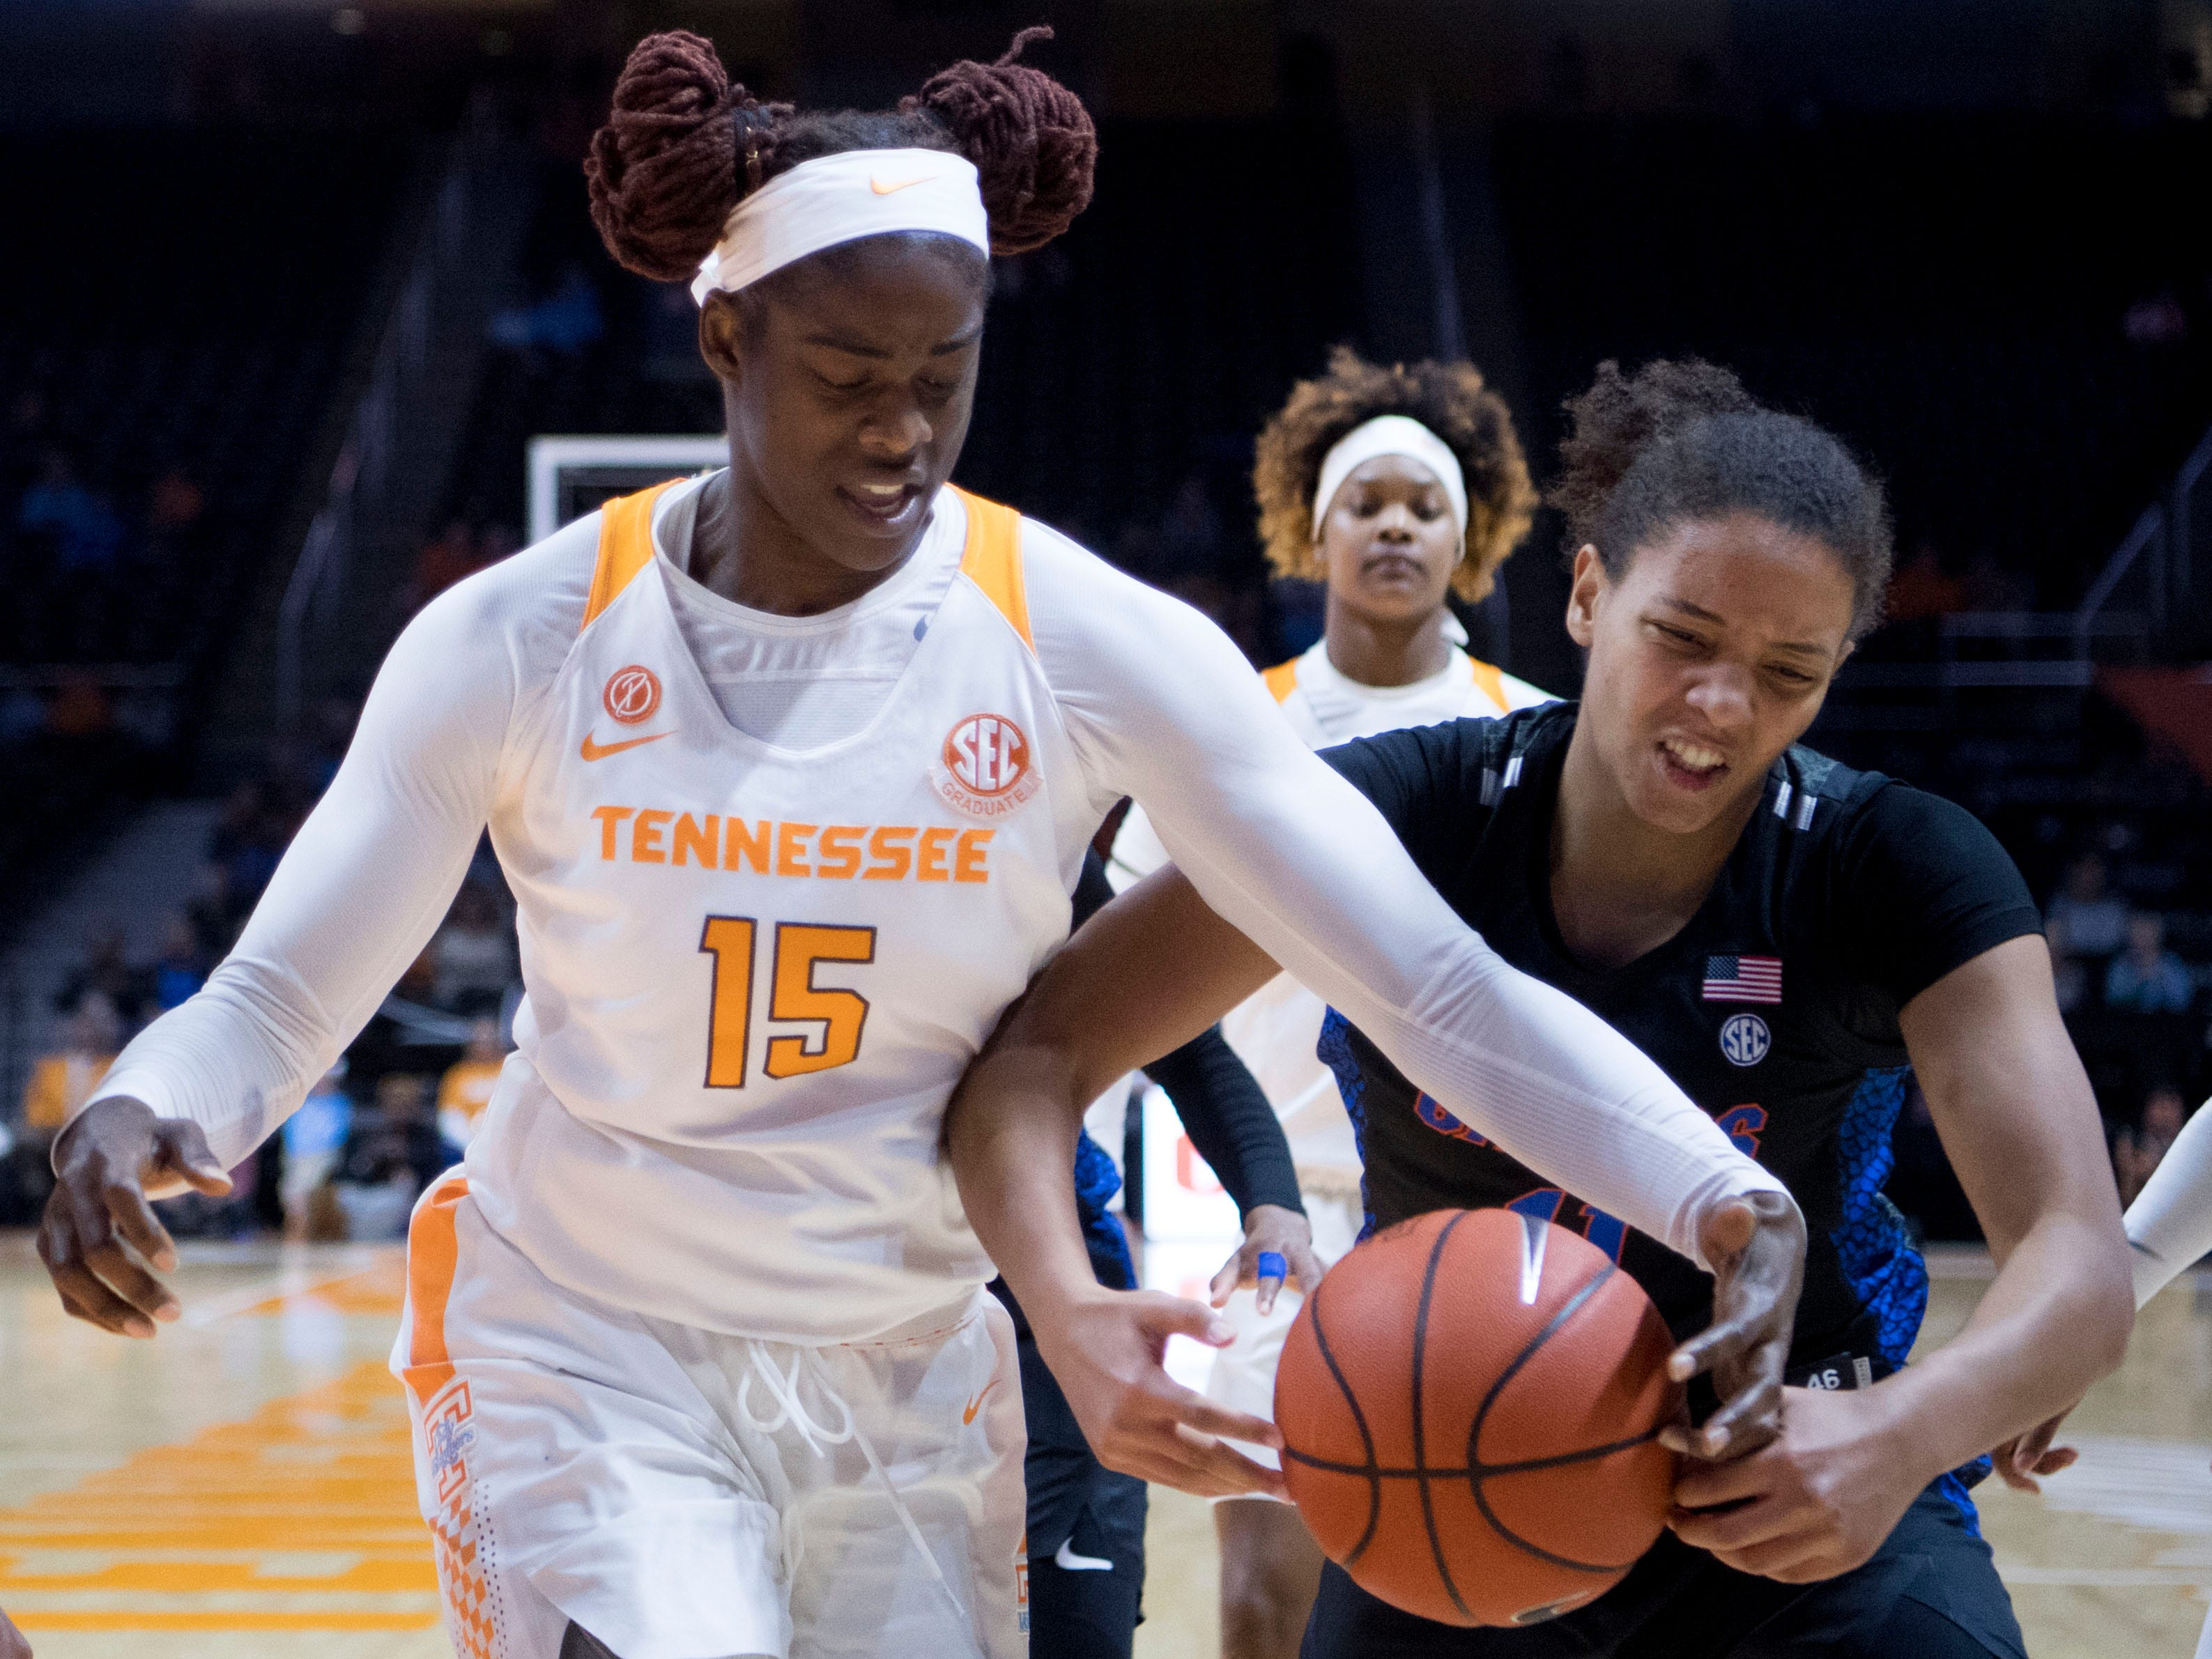 Tennessee's Cheridene Green (15) reaches for the rebound   with Florida's Emanuely de Oliveira (11) on Thursday, January 31, 2019.